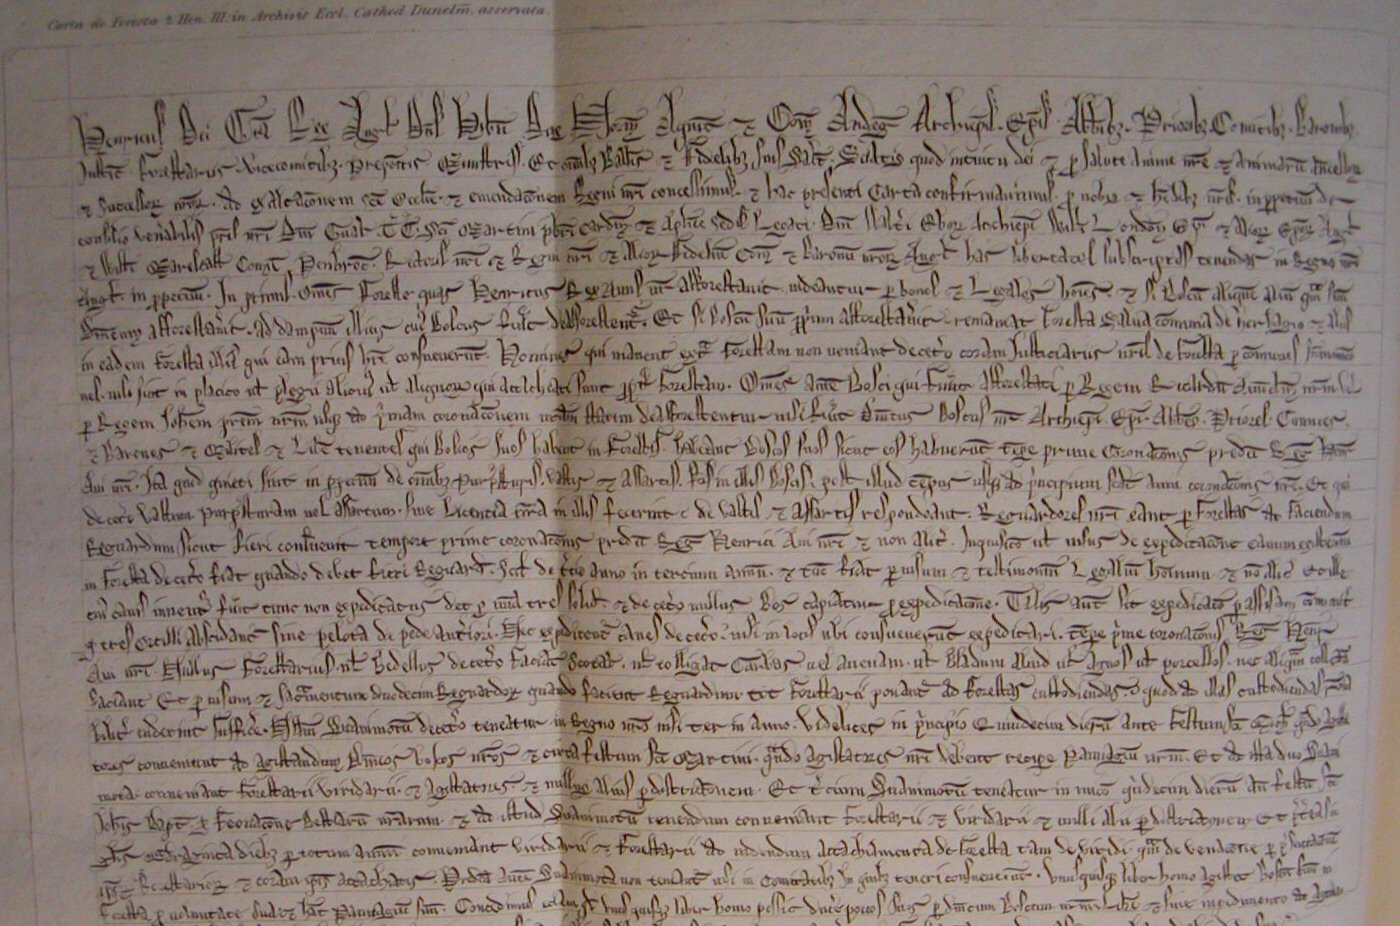 Forests and Chases: Henry III's Charter of the Forest